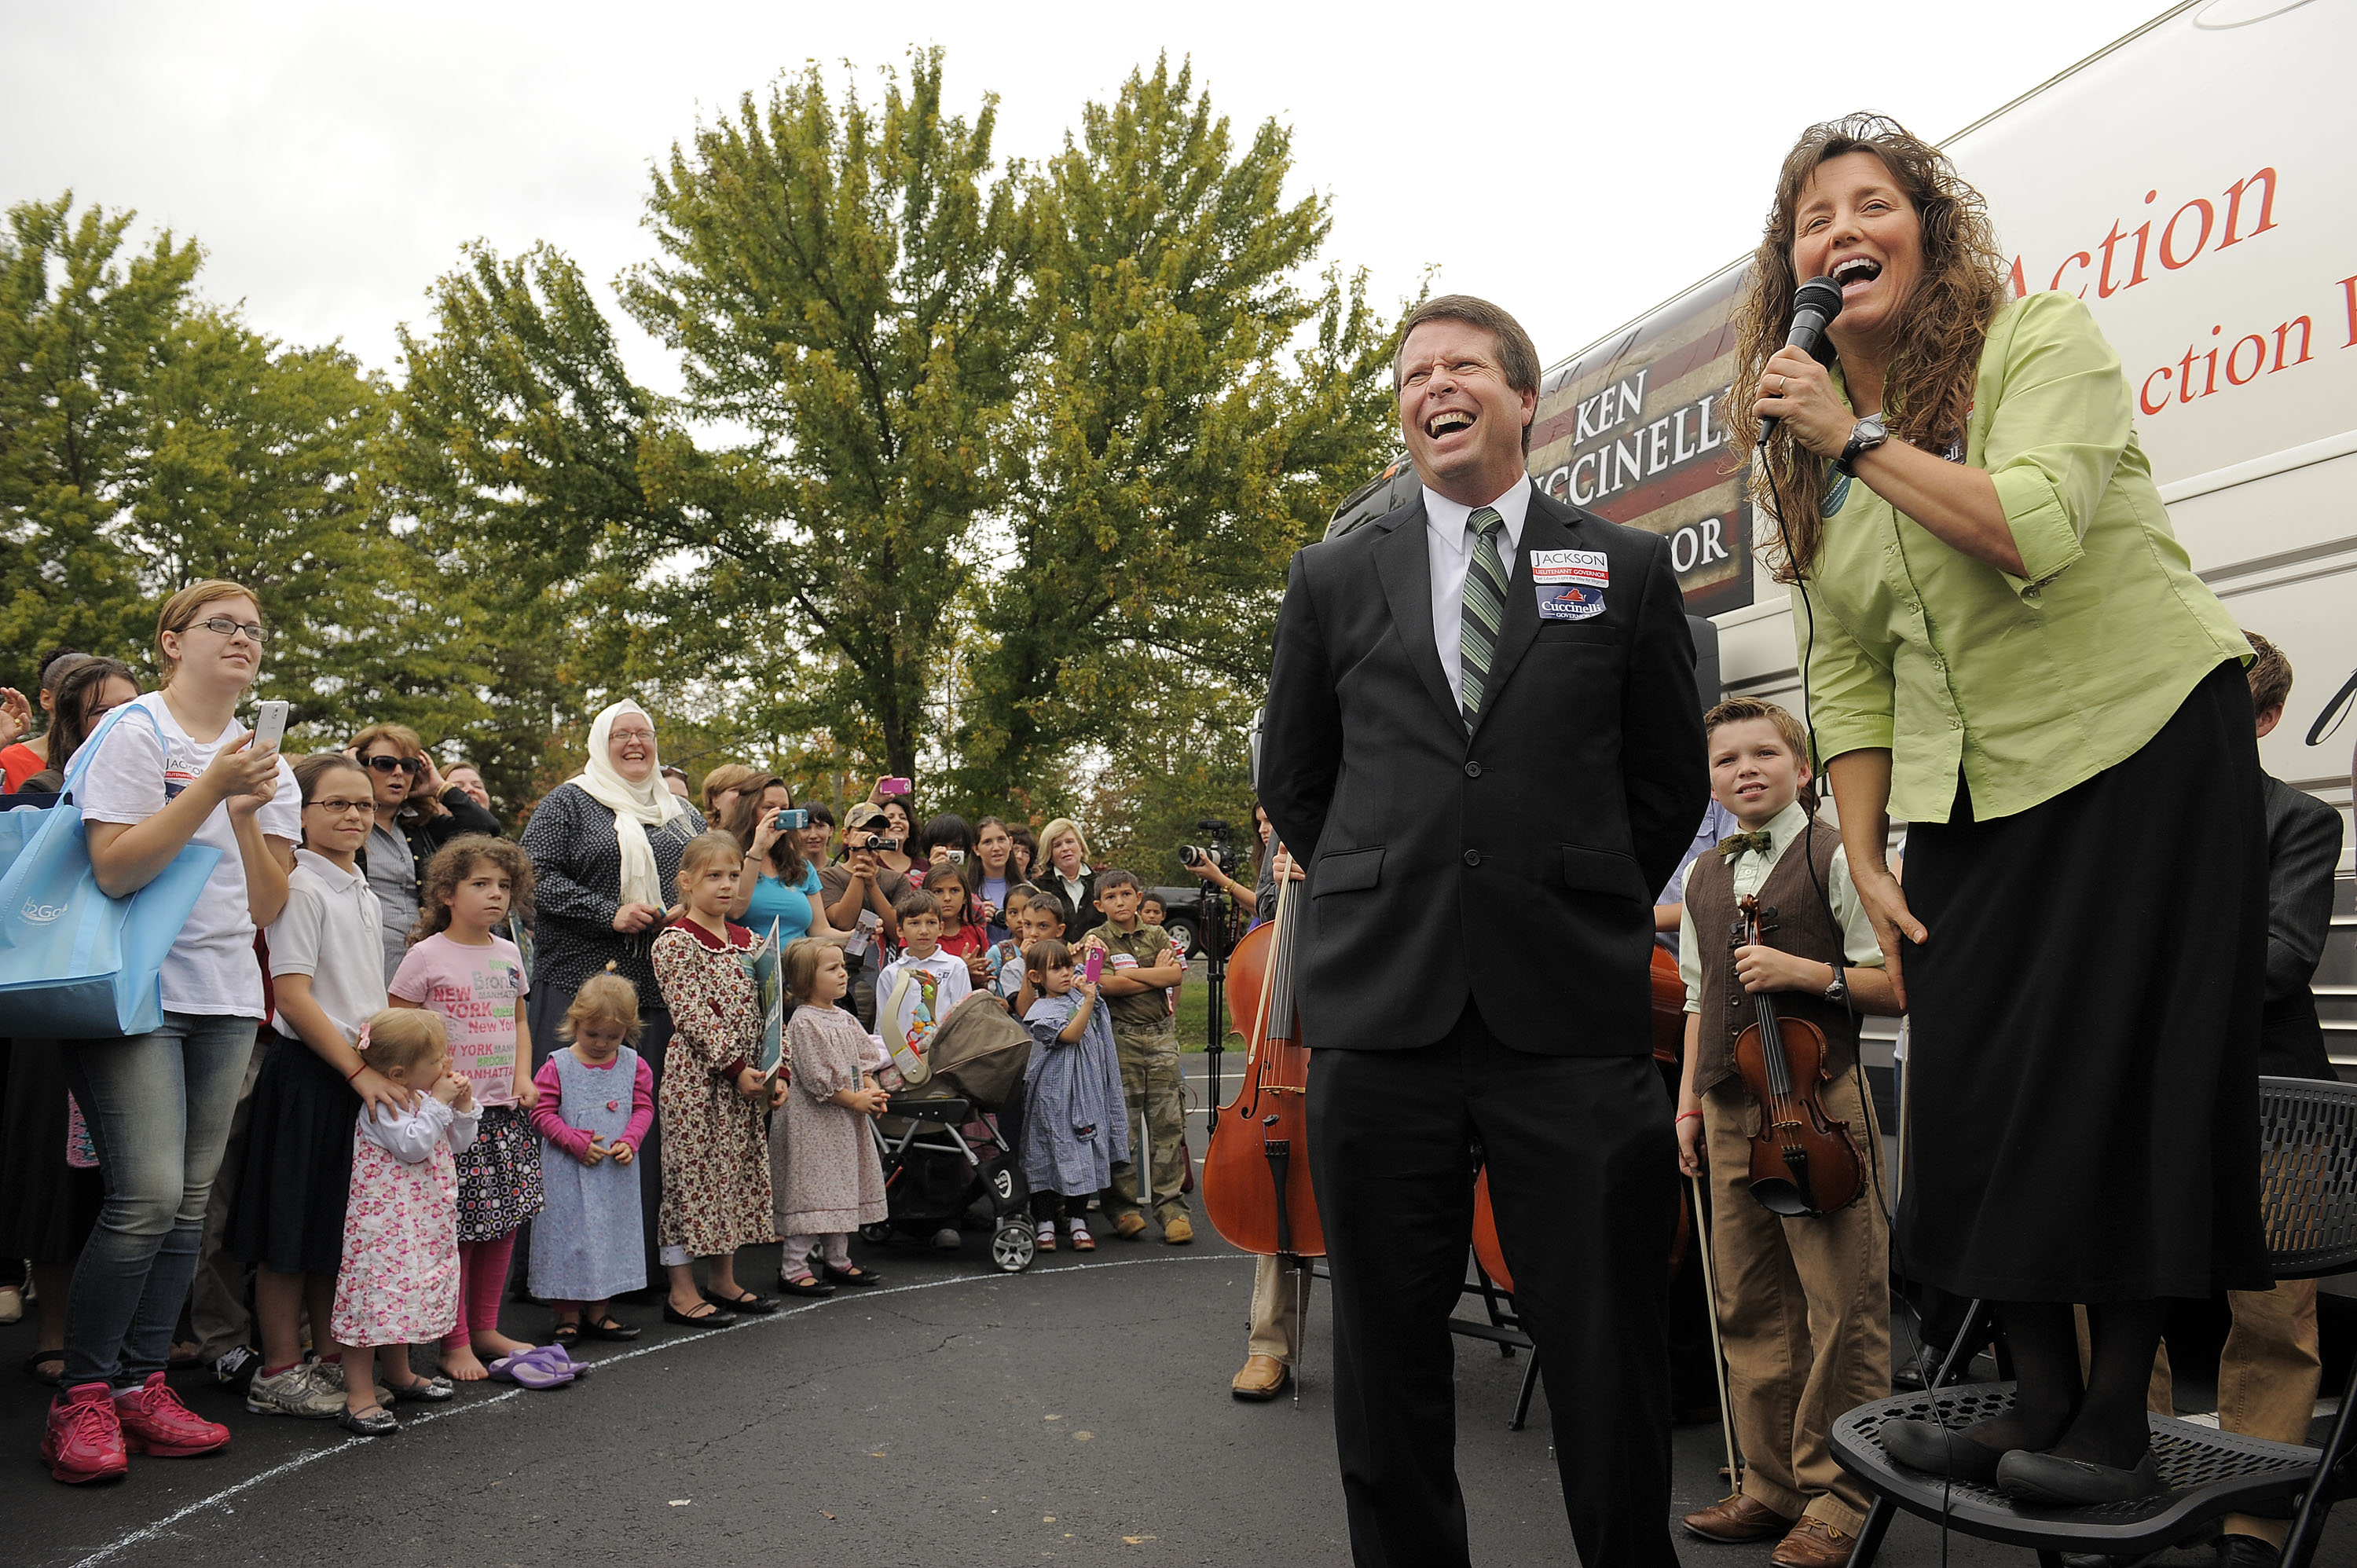 Reality telvision celebrities, Jim Bob Duggar, center, and his wife, Michelle Duggar make a stop on their  Values Bus Tour  outside Heritage Baptist Church on Wednesday October 16, 2013 in Woodbridge, VA.